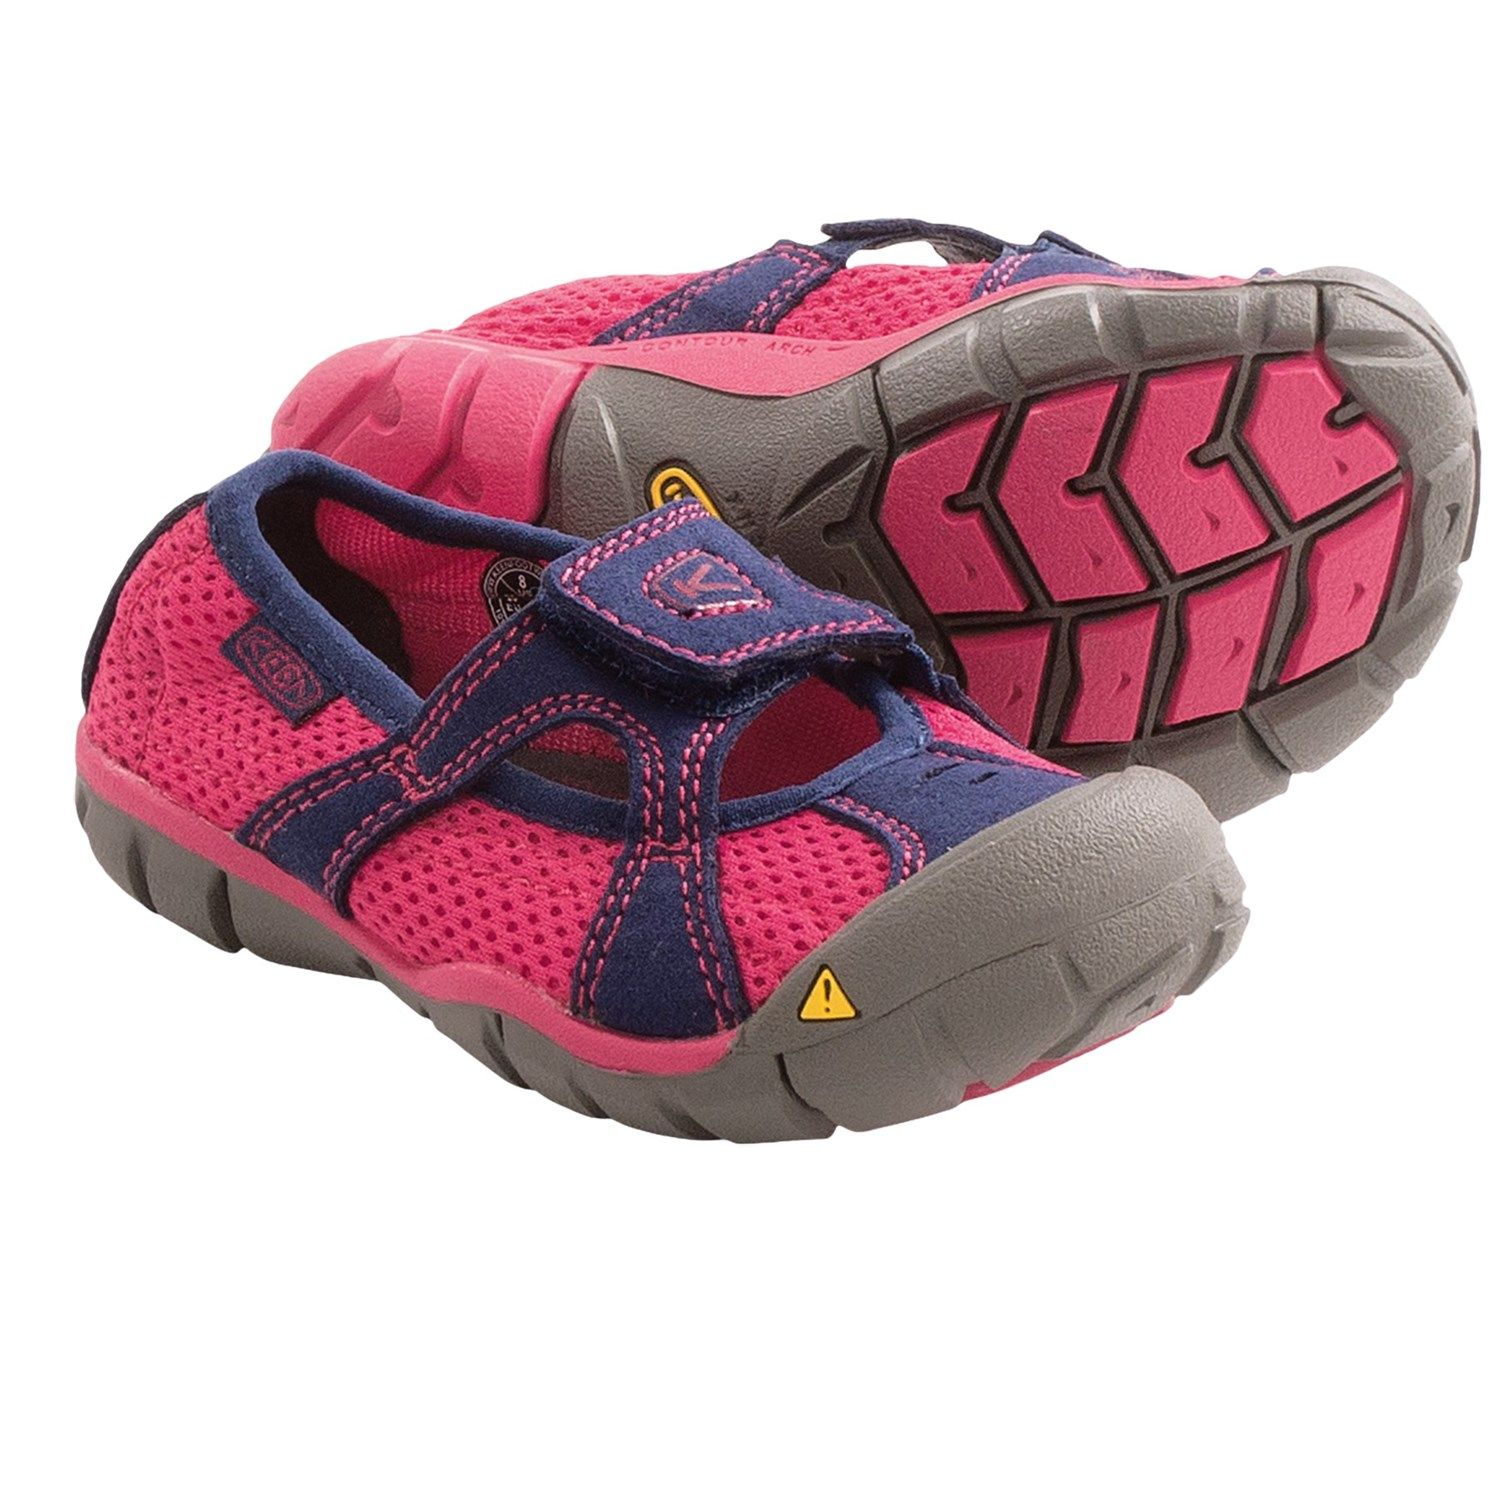 Keen Breezemont CNX Mary Jane Shoes For Little Girls